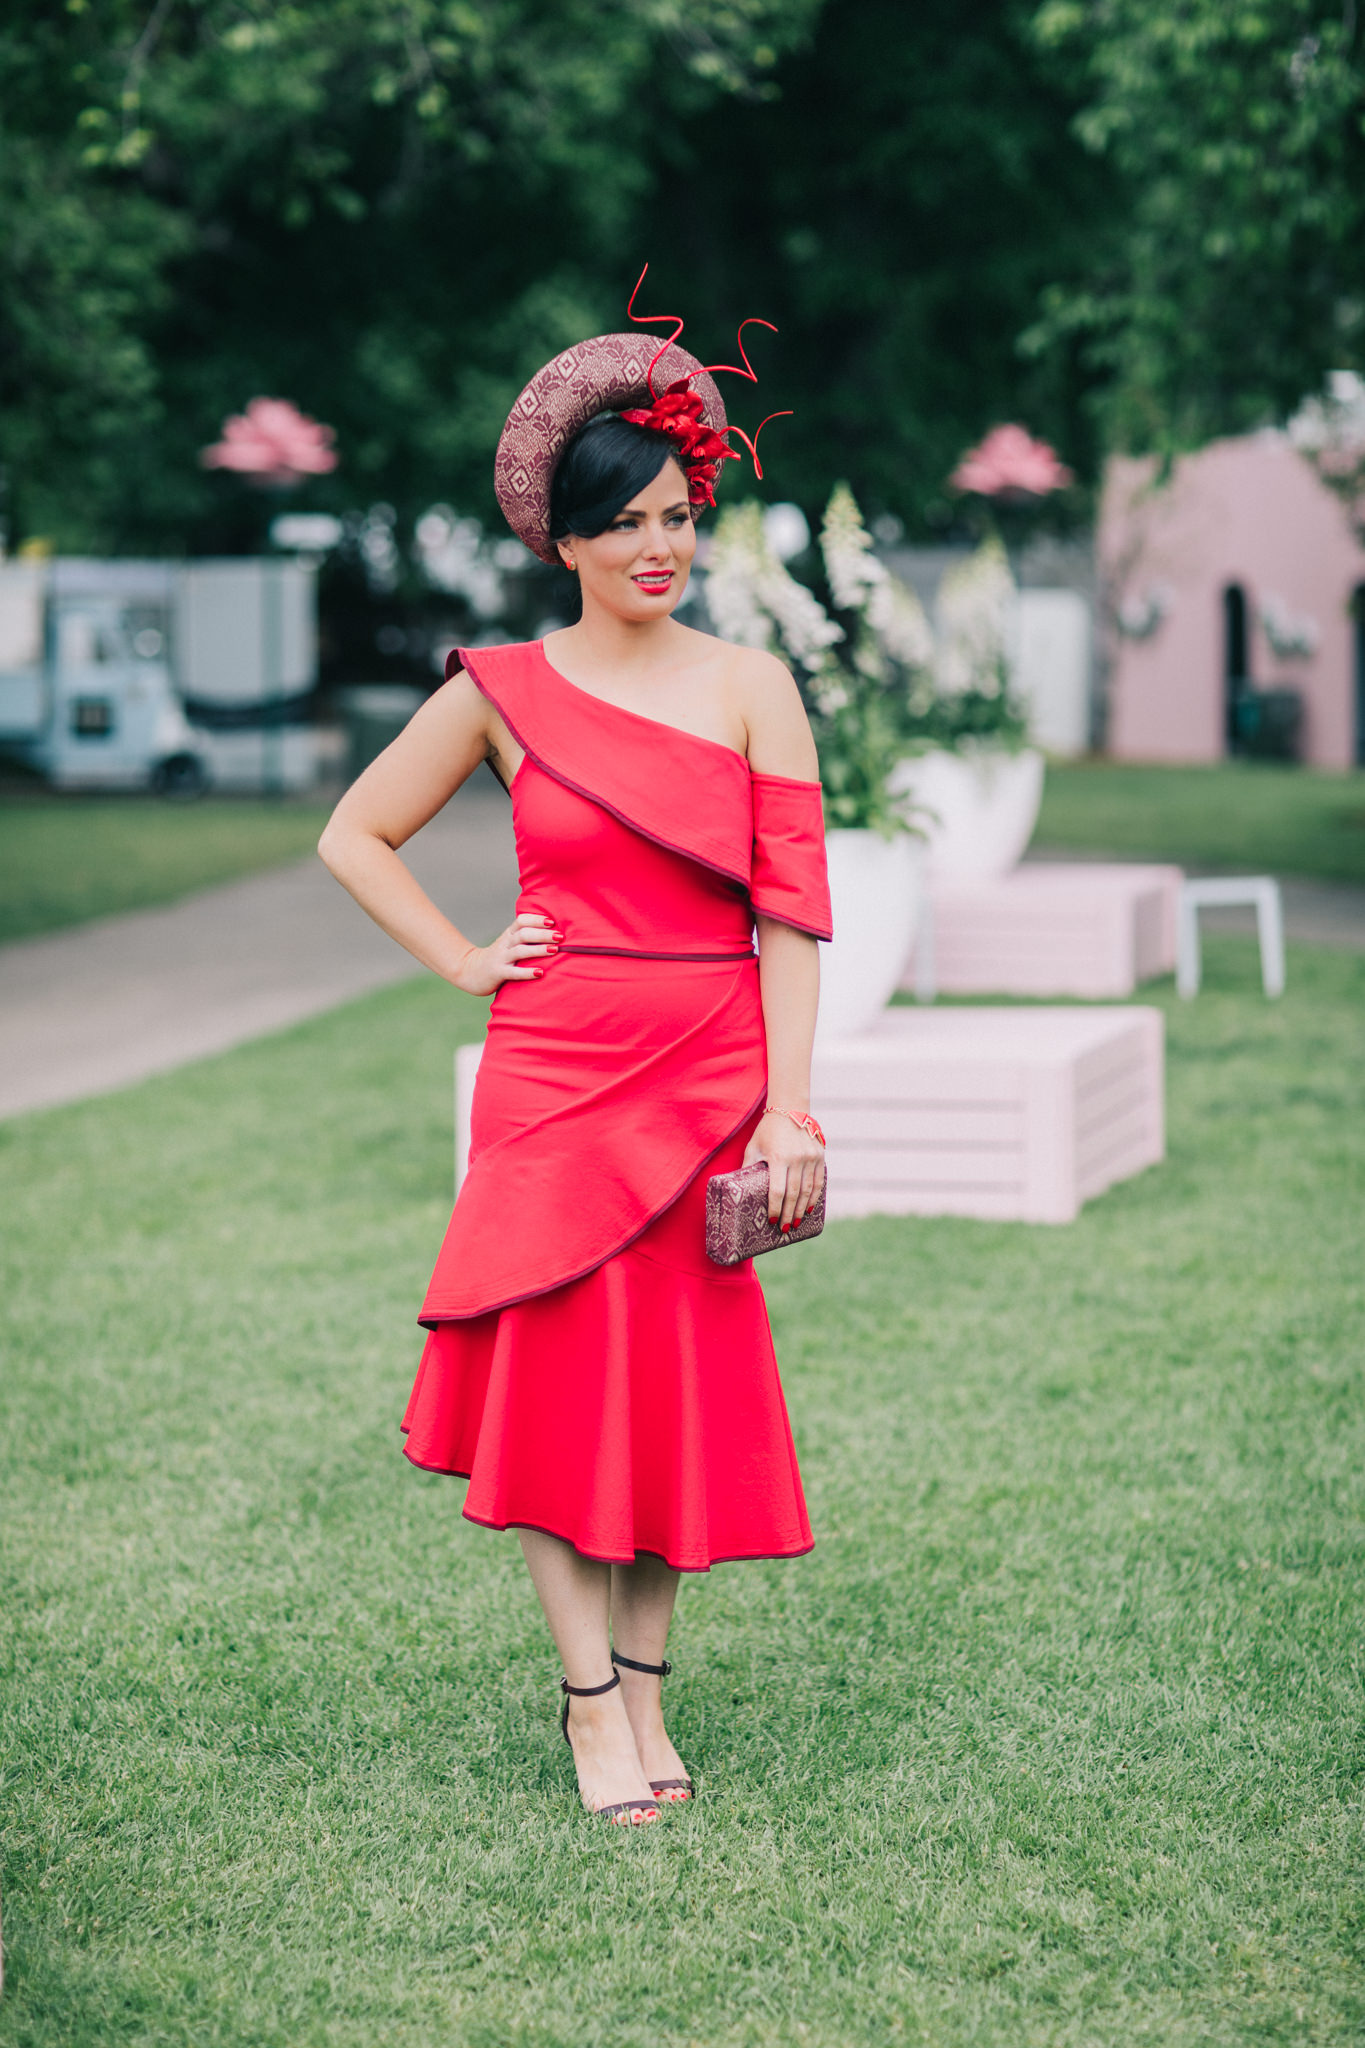 Fashion photography at the melbourne races - the best outfit trends